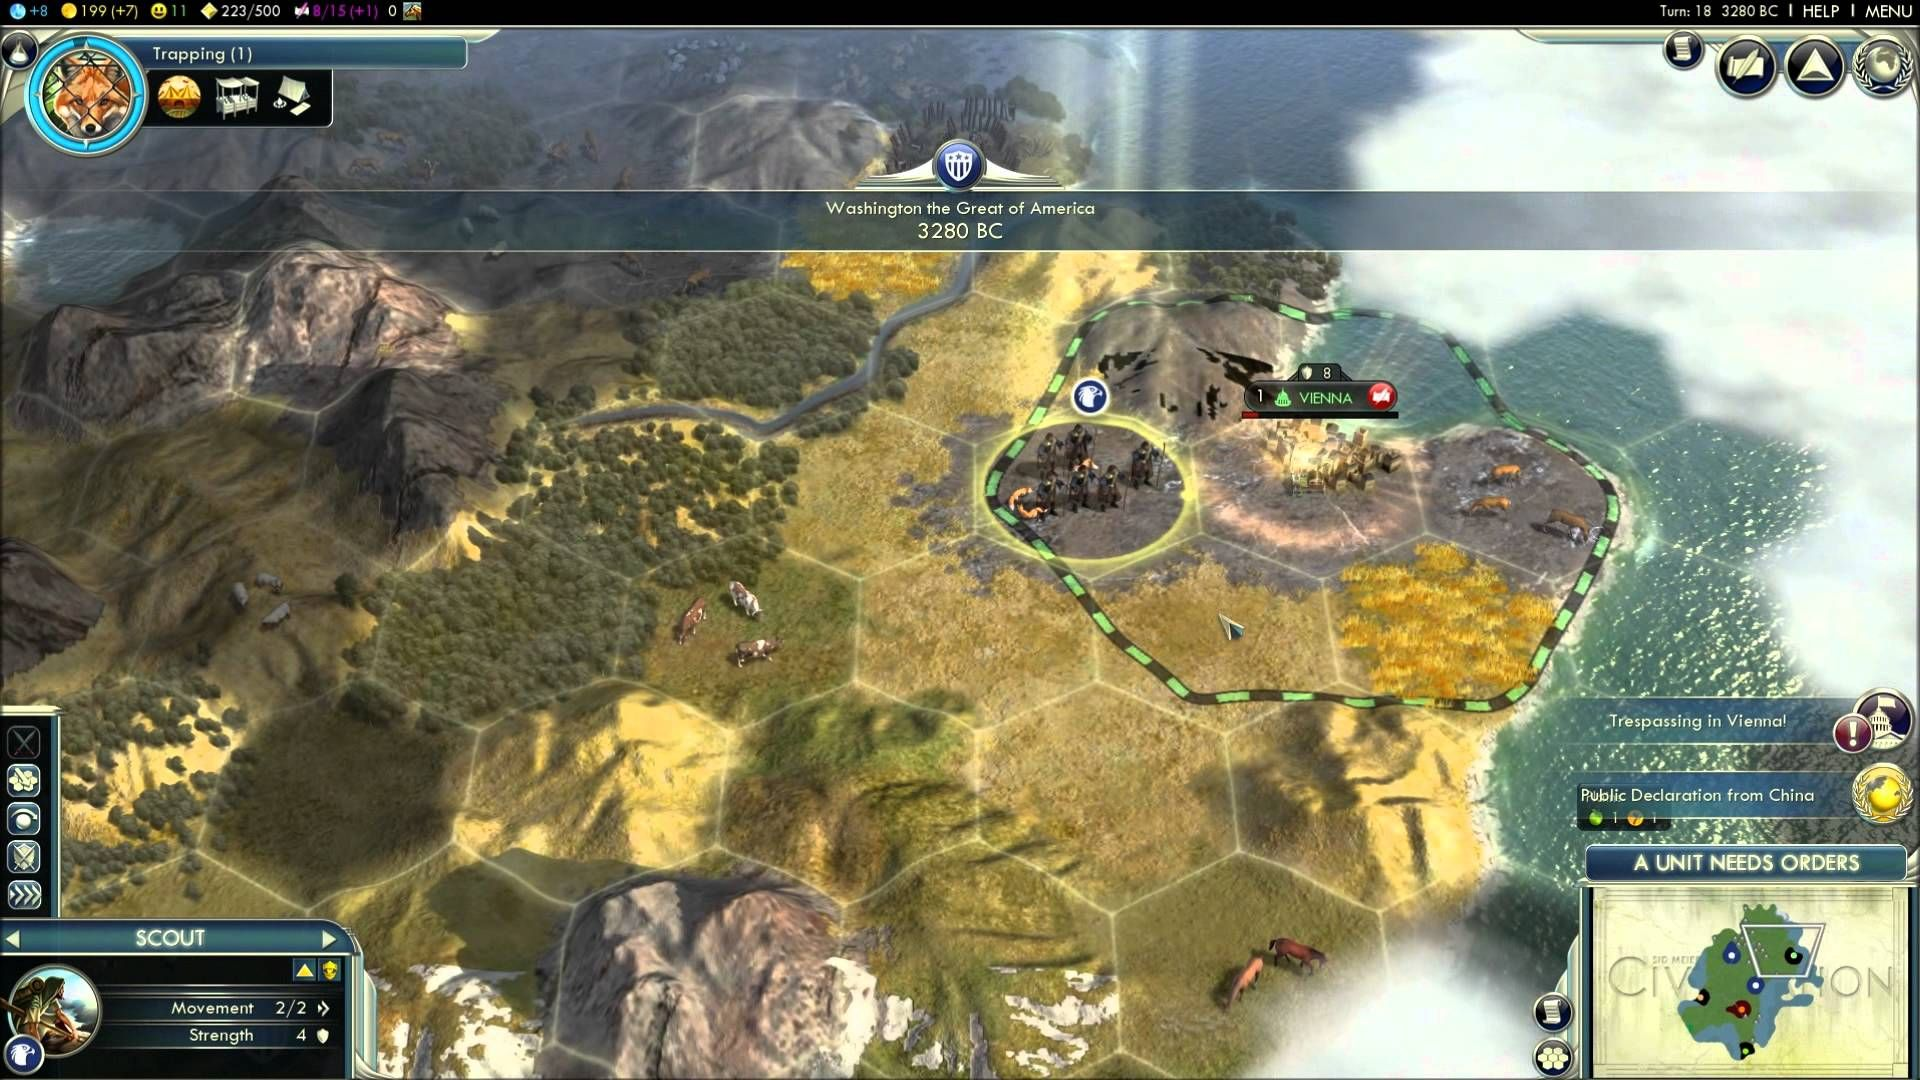 How To Play Civilization V Beginner S Tutorial Guide W Commentary For New Players To Civ 5 1080p Civilization Tutorial Gaming Pc